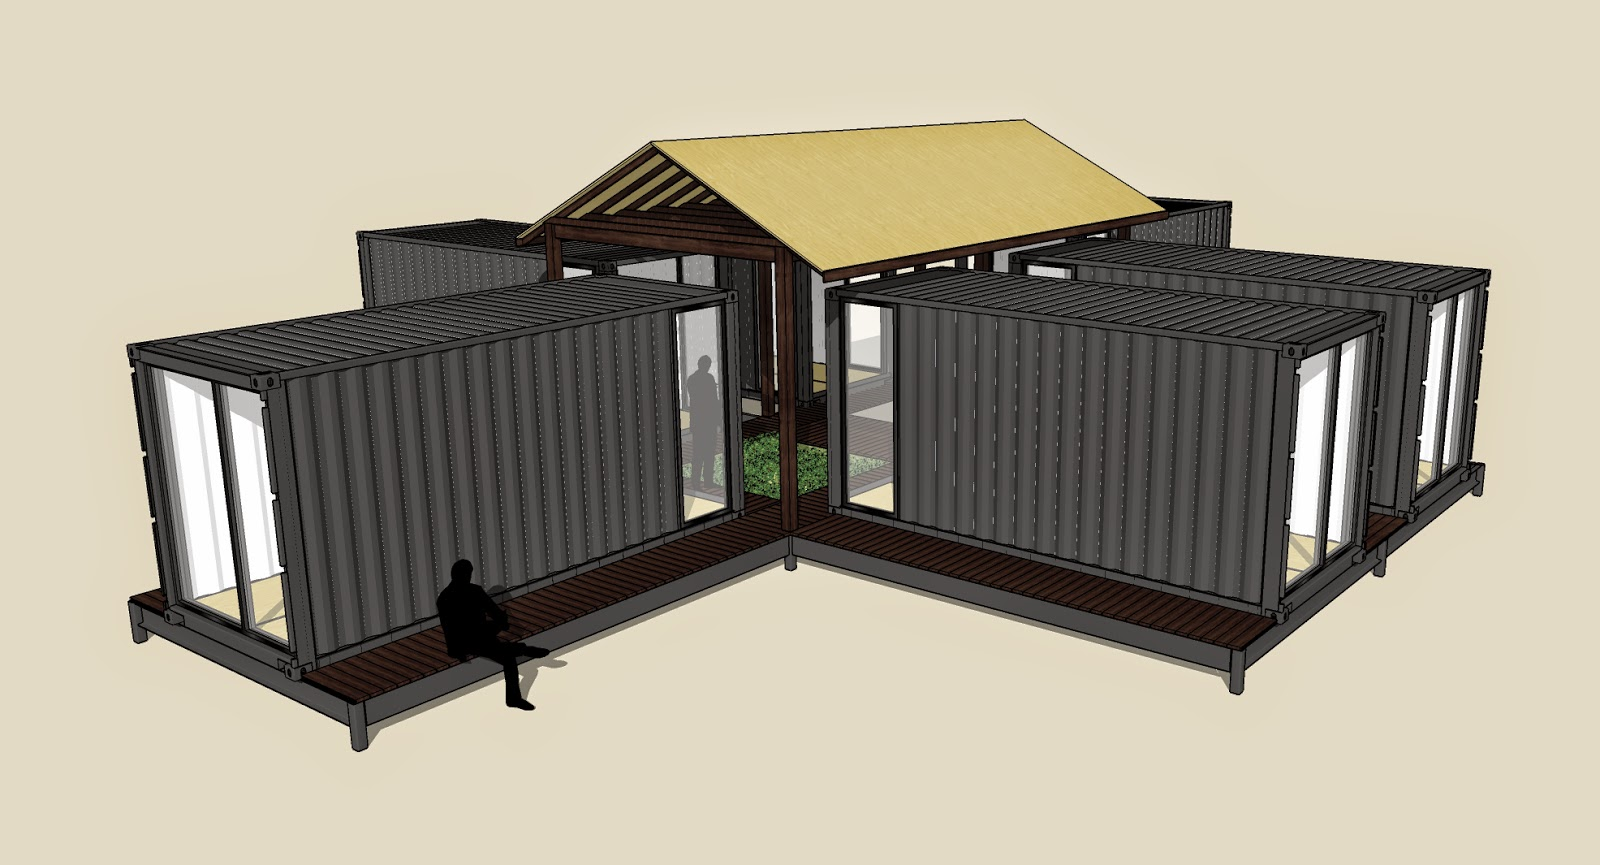 A dog 39 s life in portland oregon working shipping container design - Container homes portland oregon ...